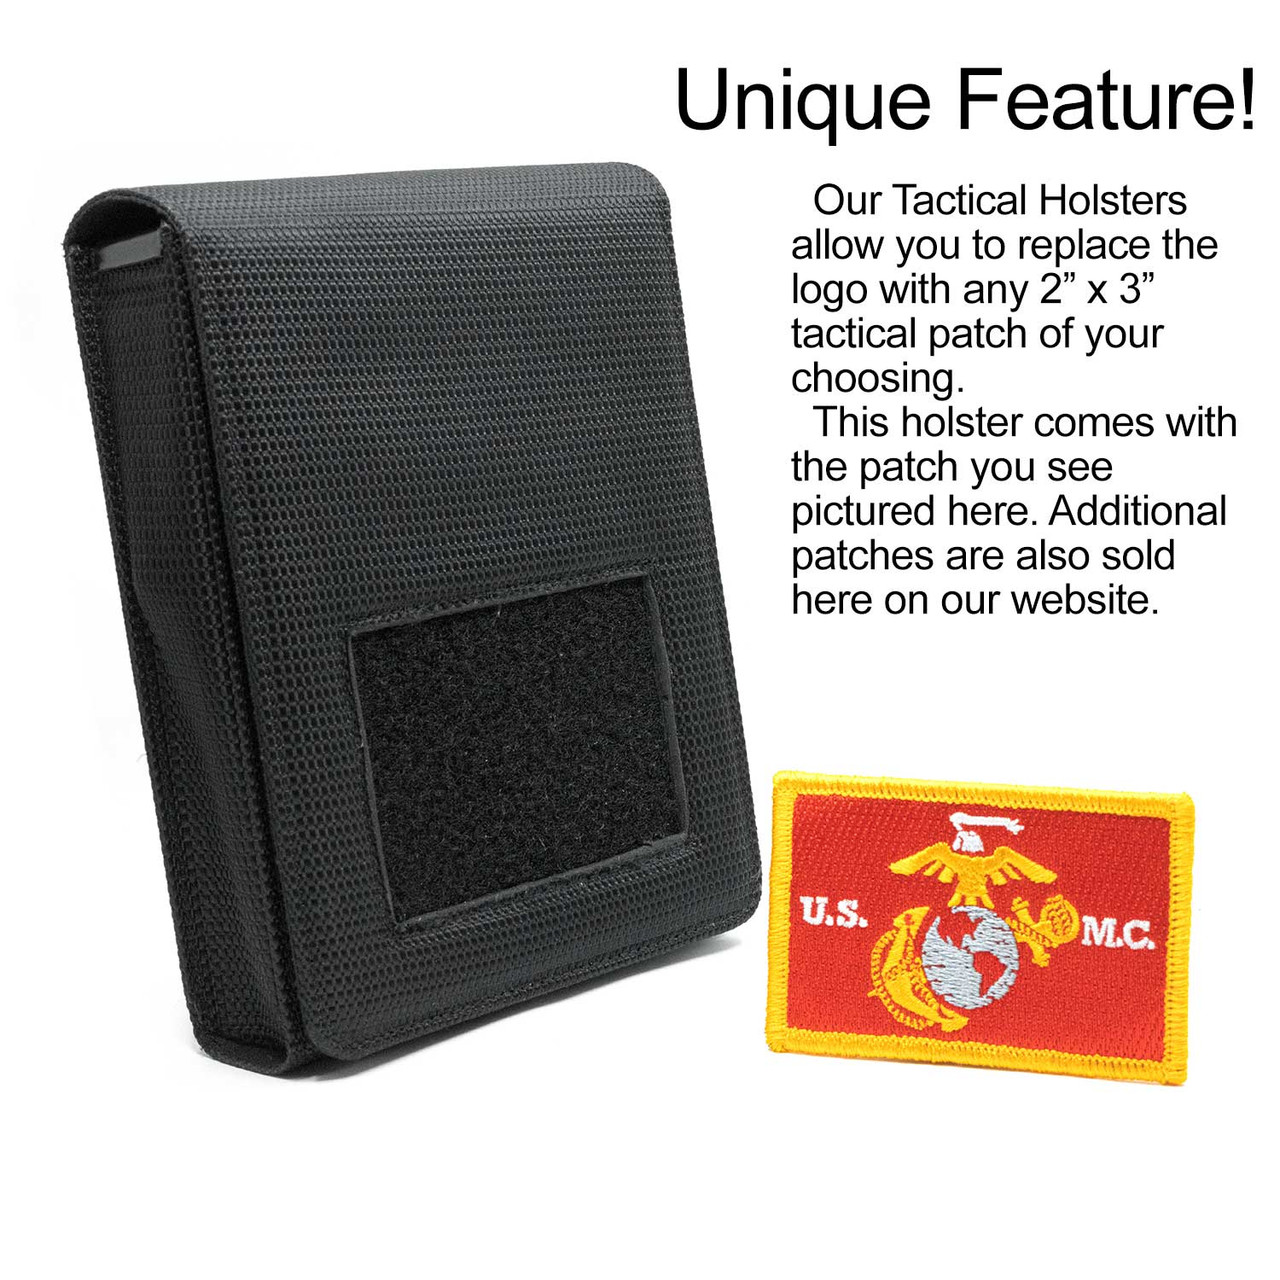 Springfield Ultra Compact Marine Corps Tactical Patch Holster